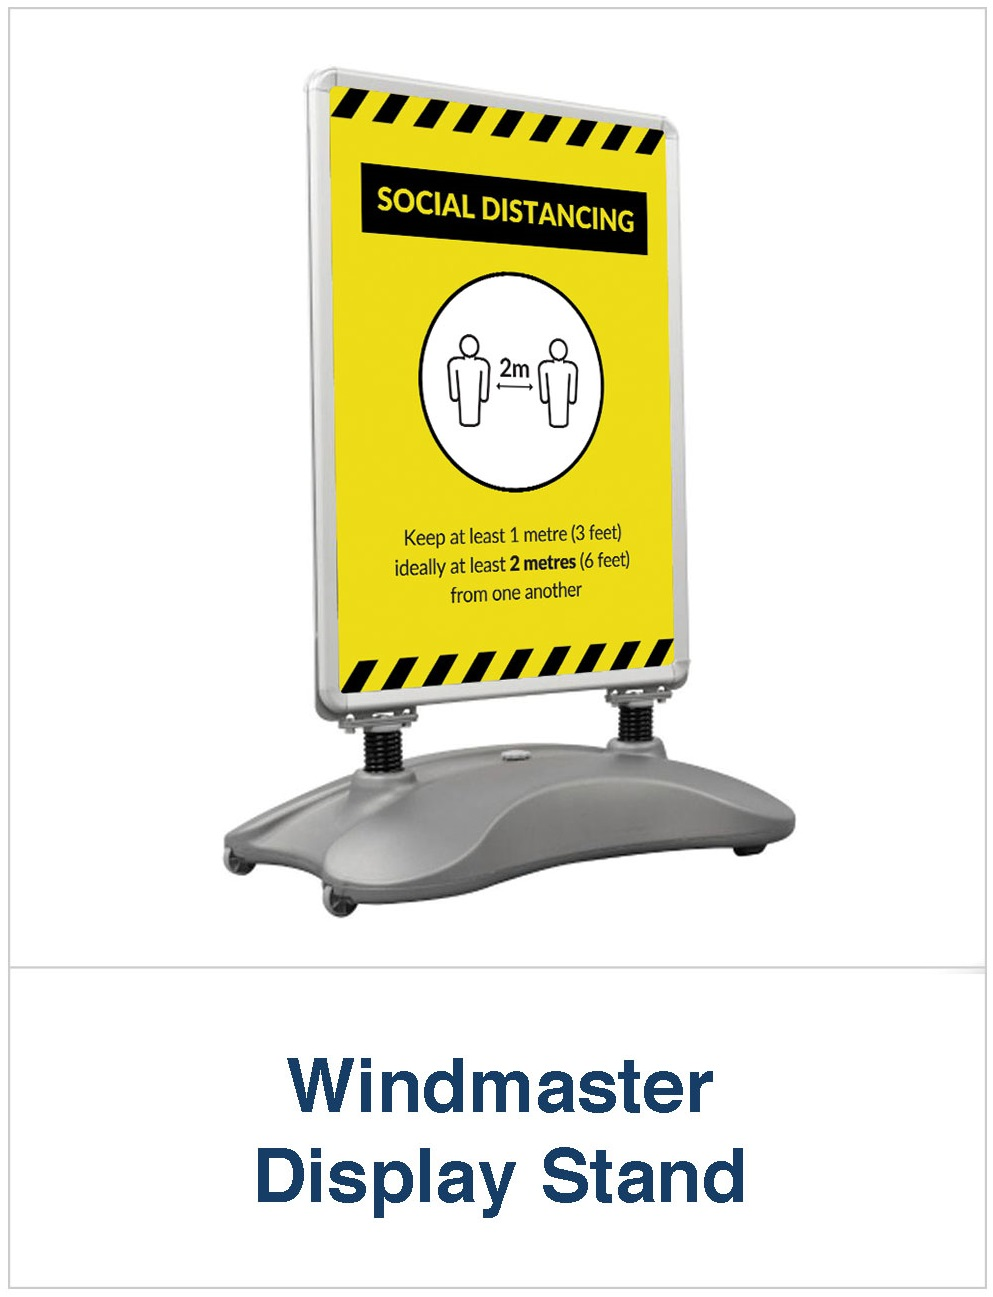 windmaster_display_stand